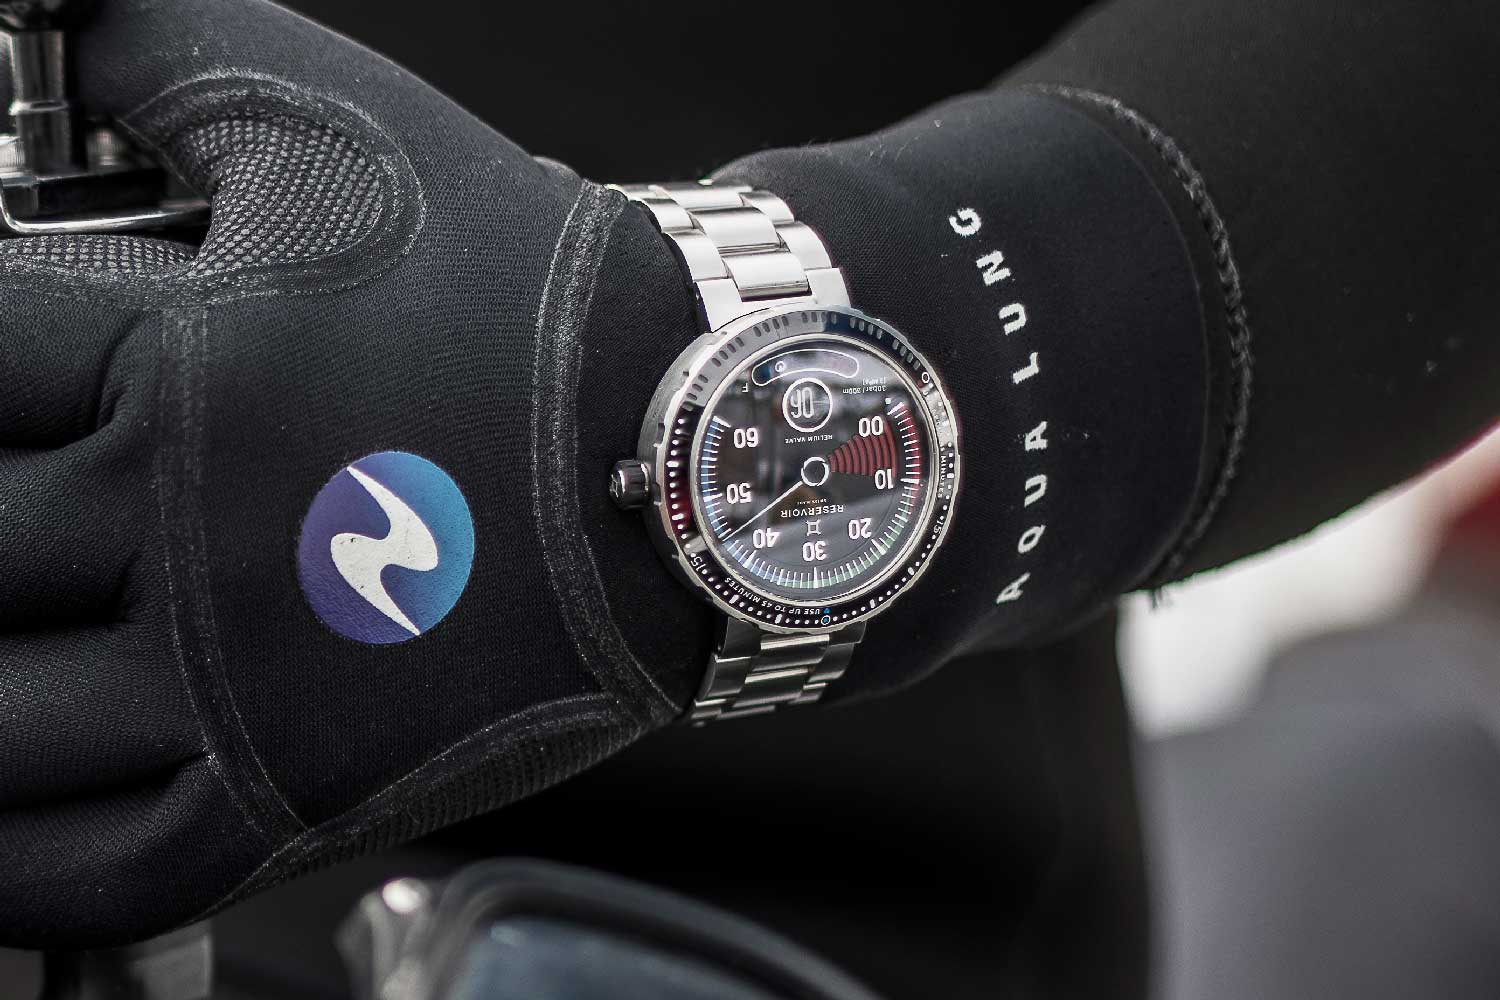 For the launch of the Hydrosphere in 2019, the brand headed on a diving trip with the watch; the Hydrosphere Blackfin also comes with a rubber strap.